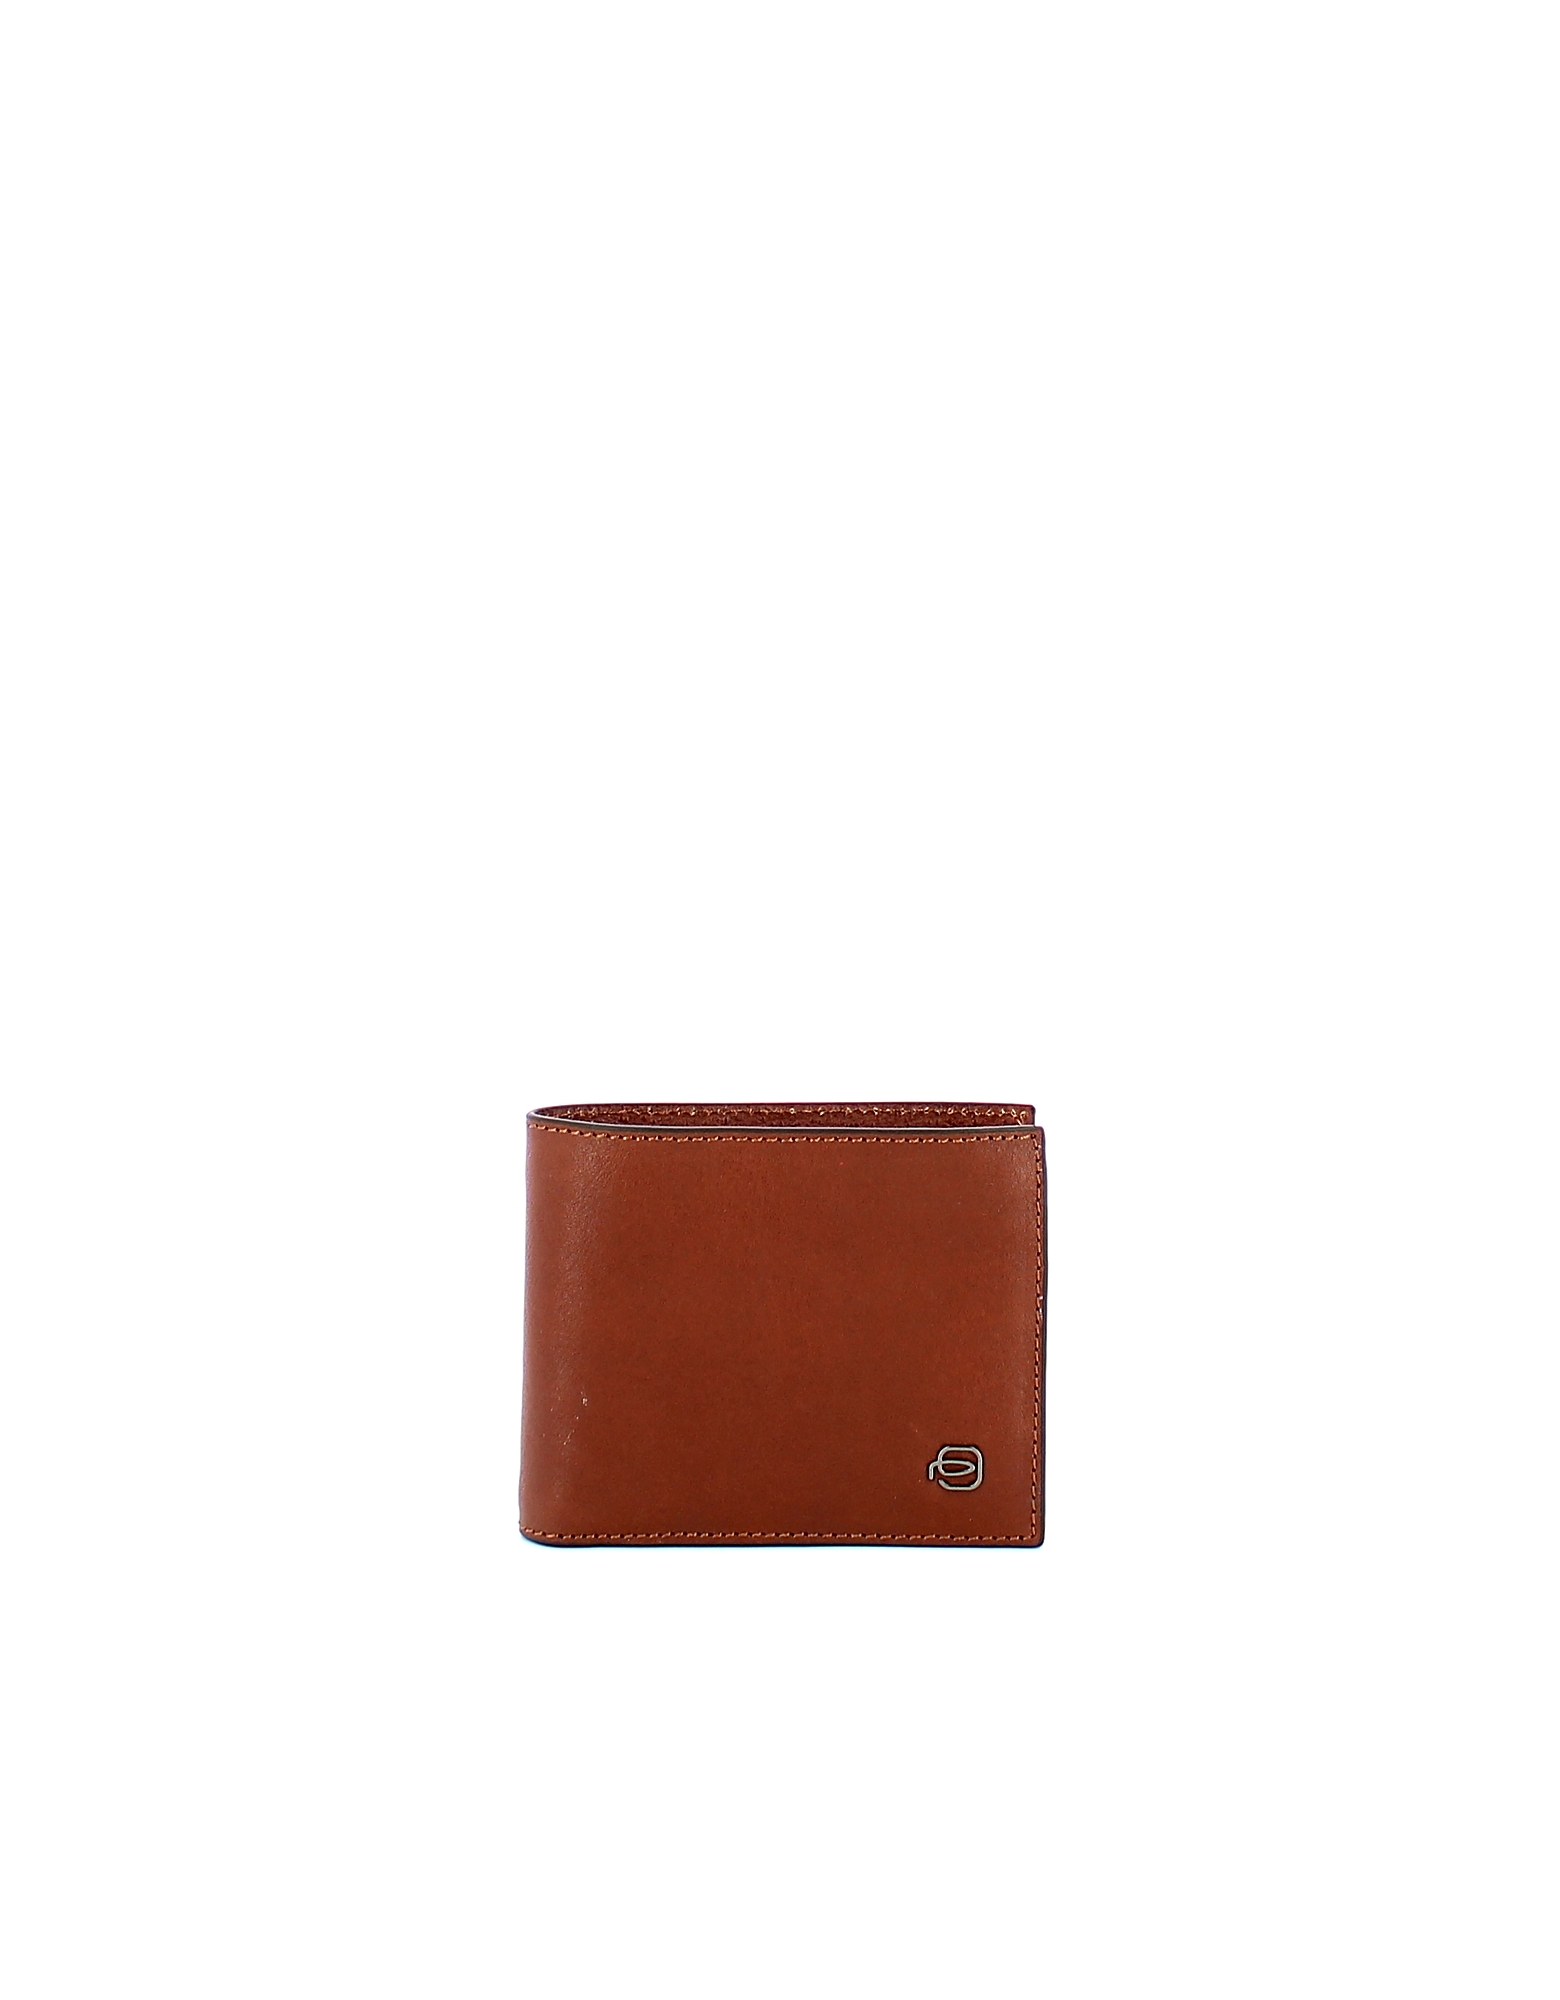 Piquadro Designer Men's Bags, Men's Brown Wallet